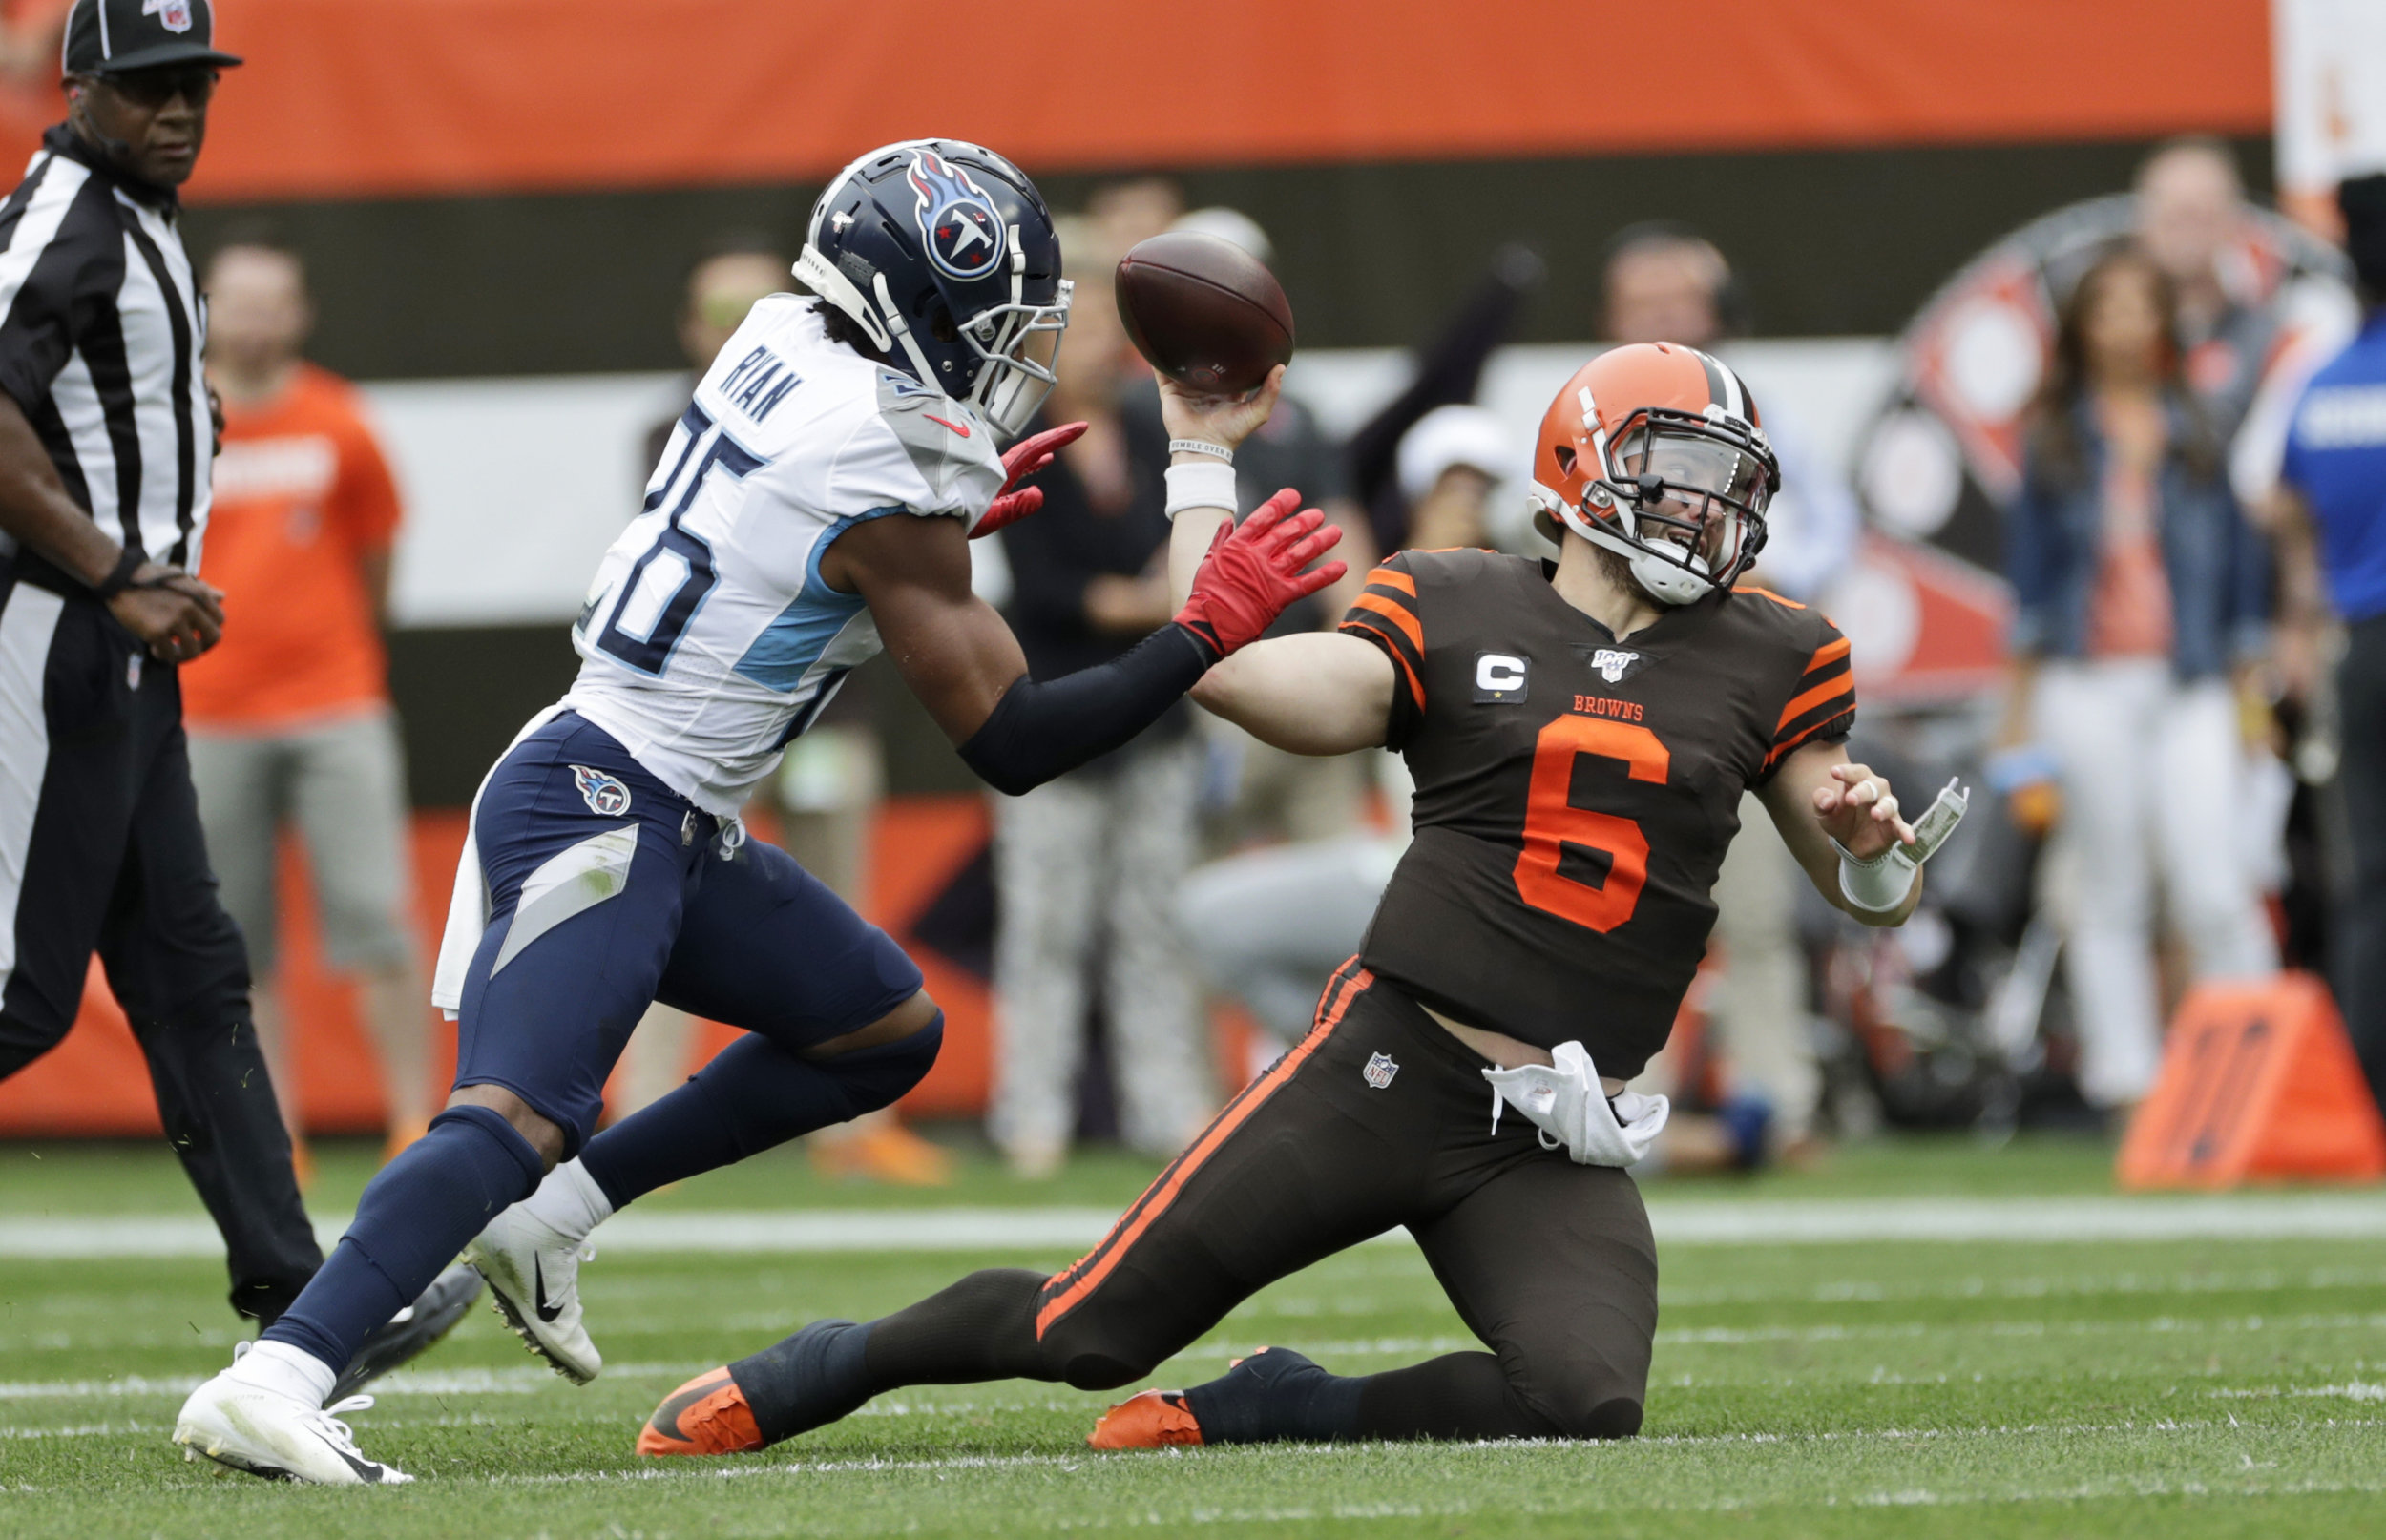 Despite the incredibly high expectations for his sophomore season, Baker Mayfield struggled mightily, throwing three interceptions in the Browns huge loss to the Titans.  Photo by The Associated Press.